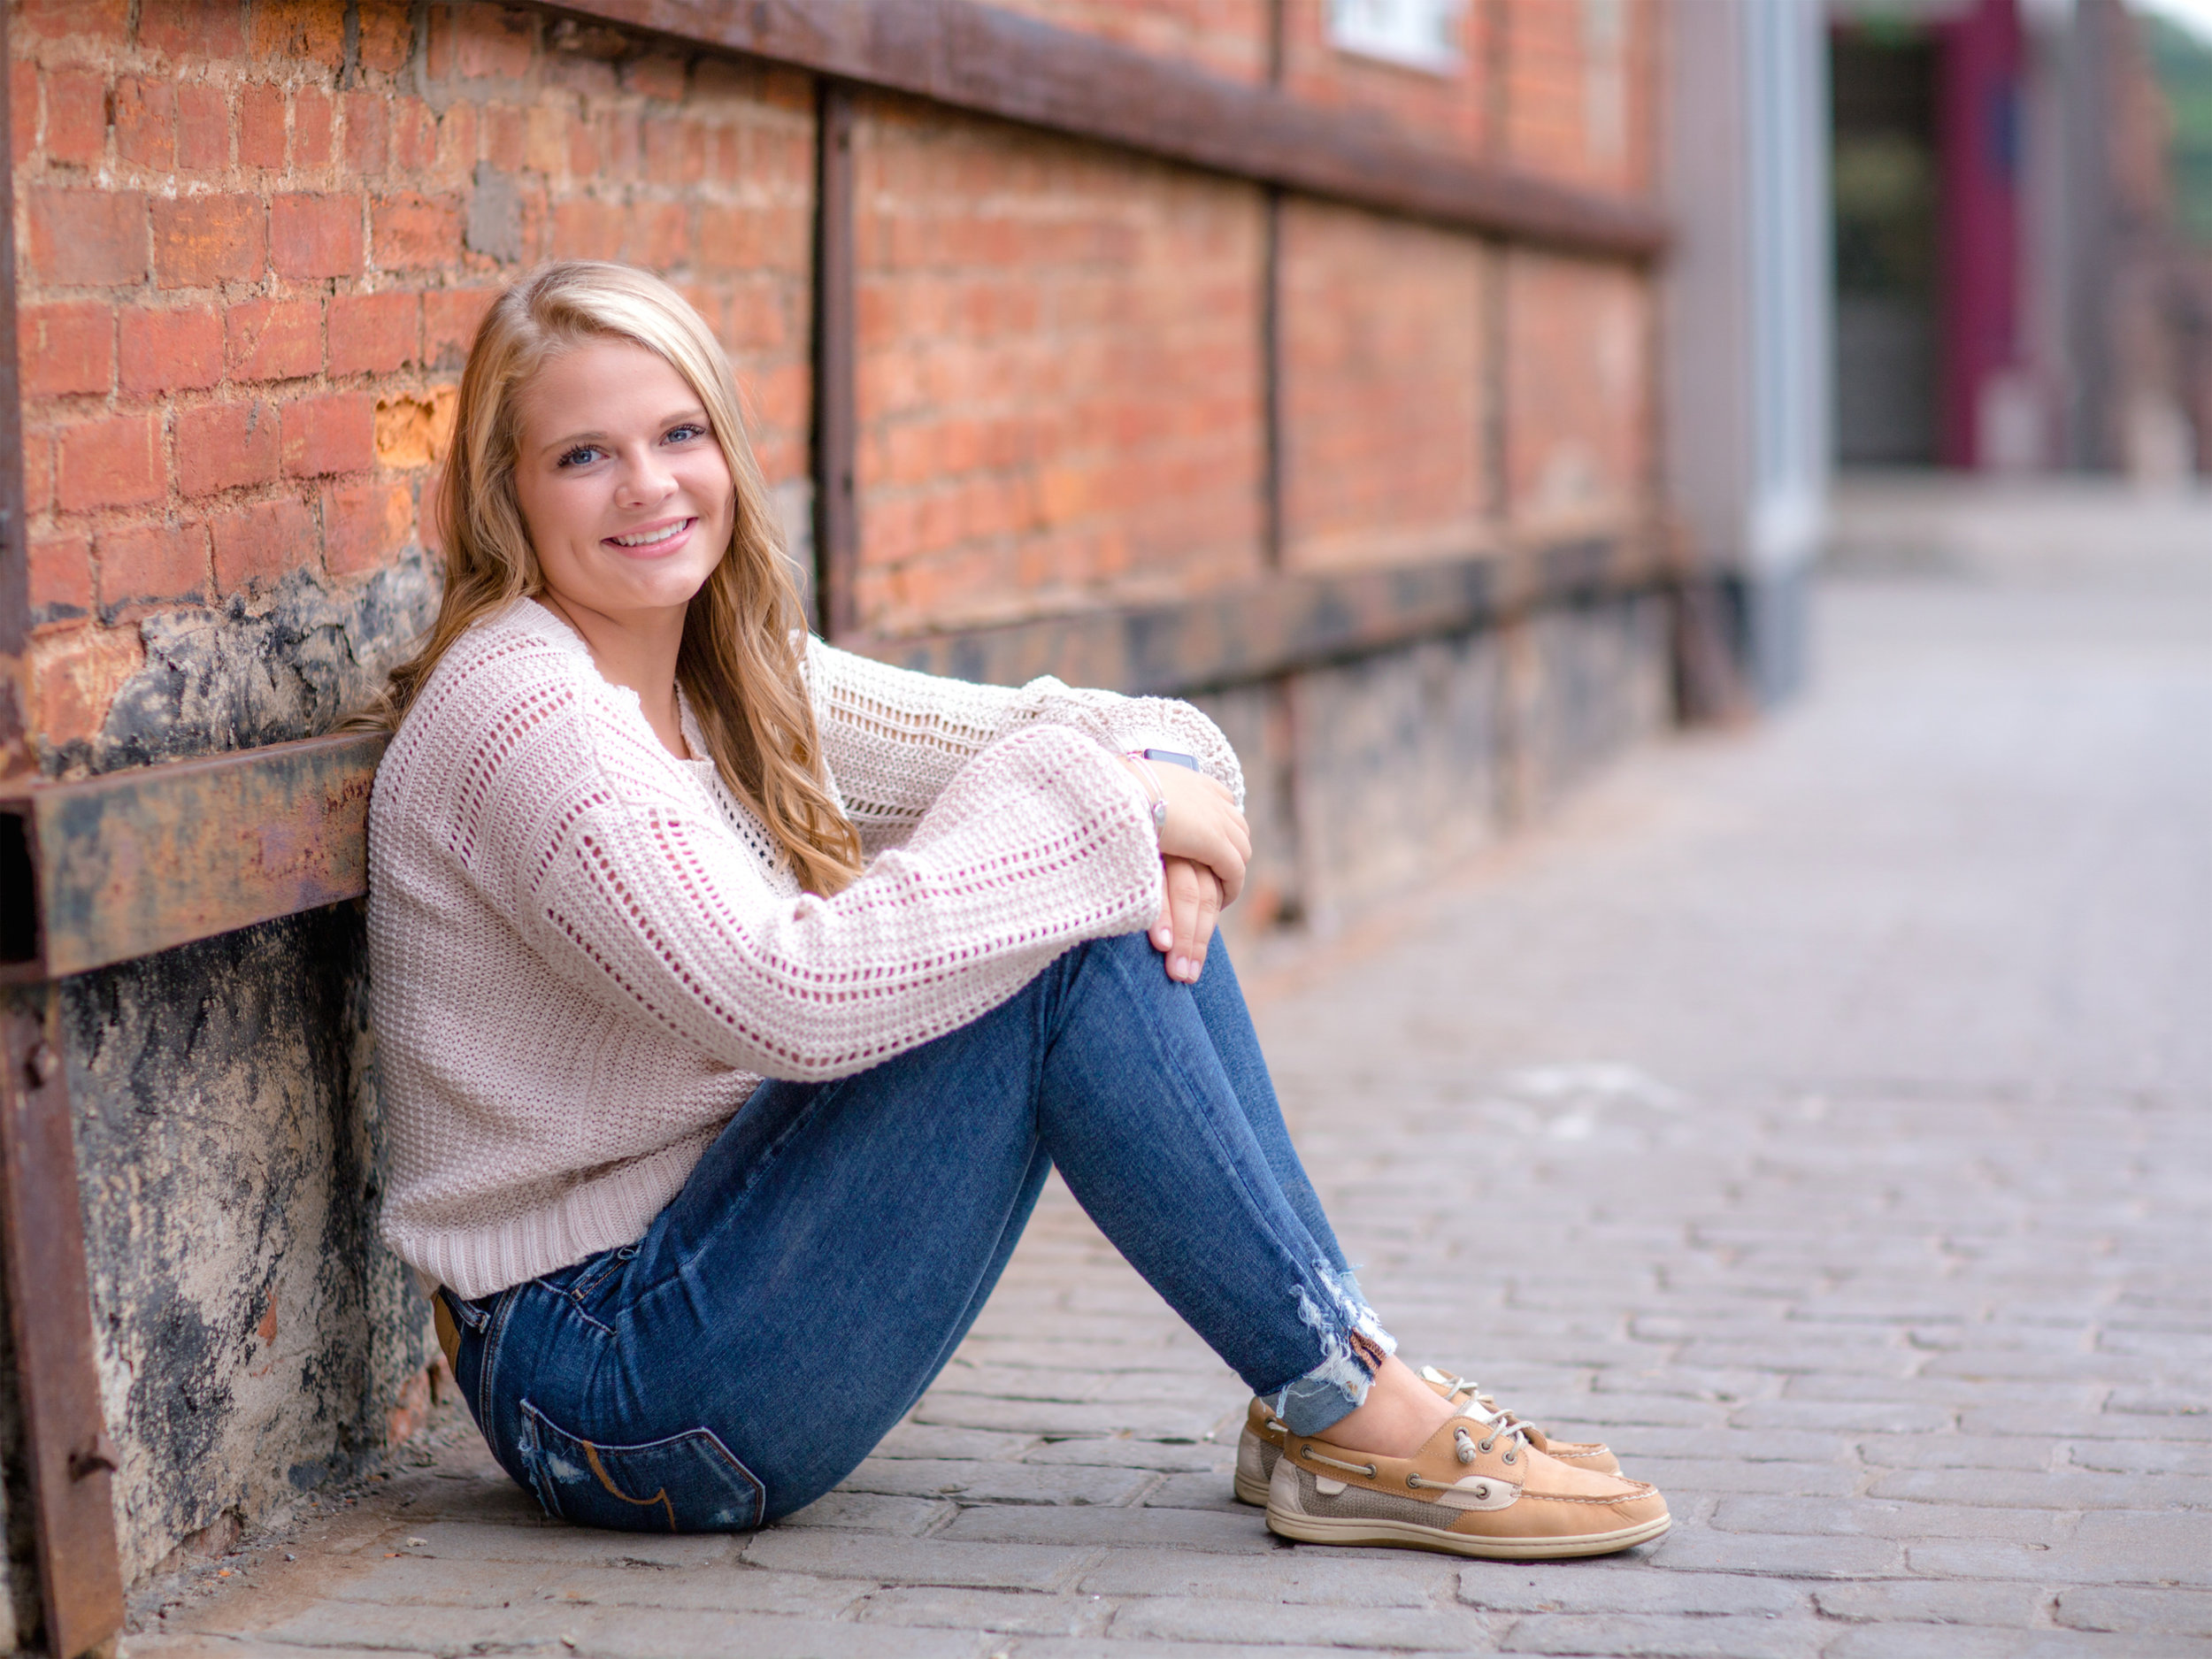 Alexis_Scalise_Senior_14.jpg